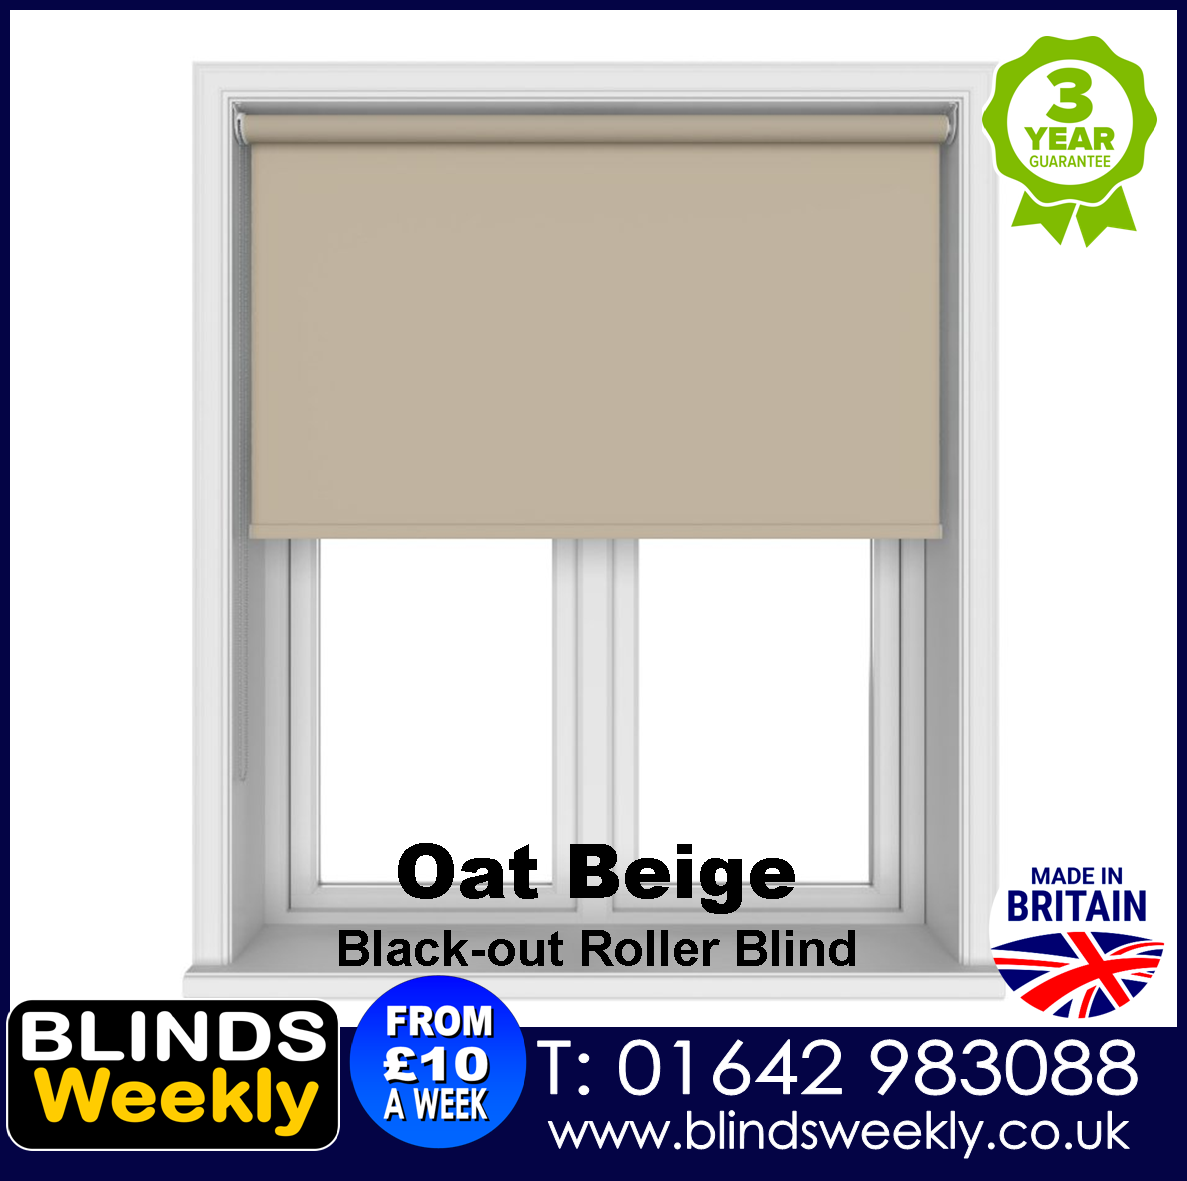 Blinds Weekly Blackout Roller Blind - OAT BEIGE